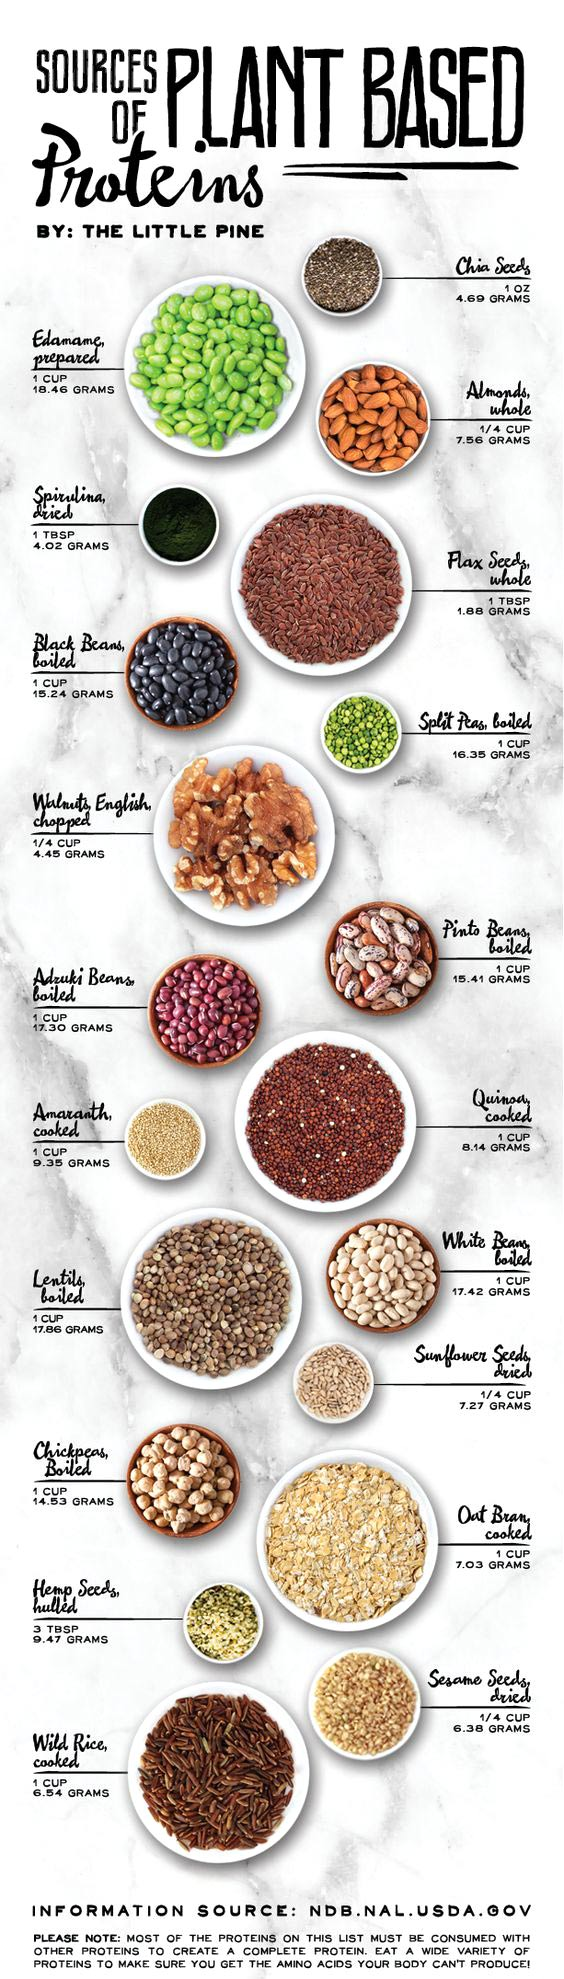 plant-based-proteins